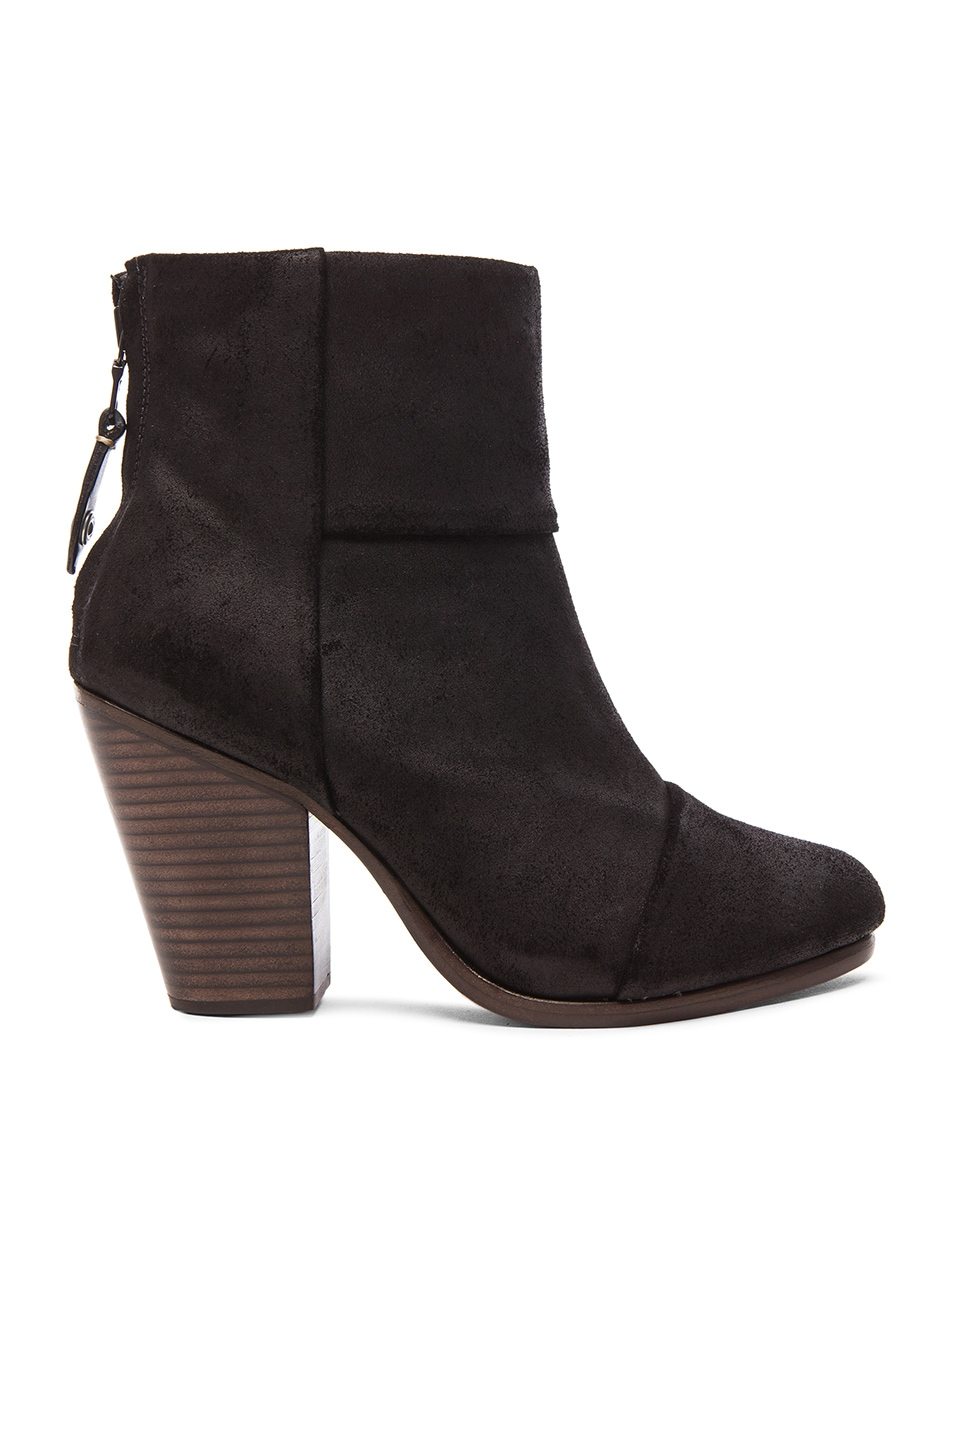 Image 1 of Rag & Bone Newbury Suede Boots in Black Waxy